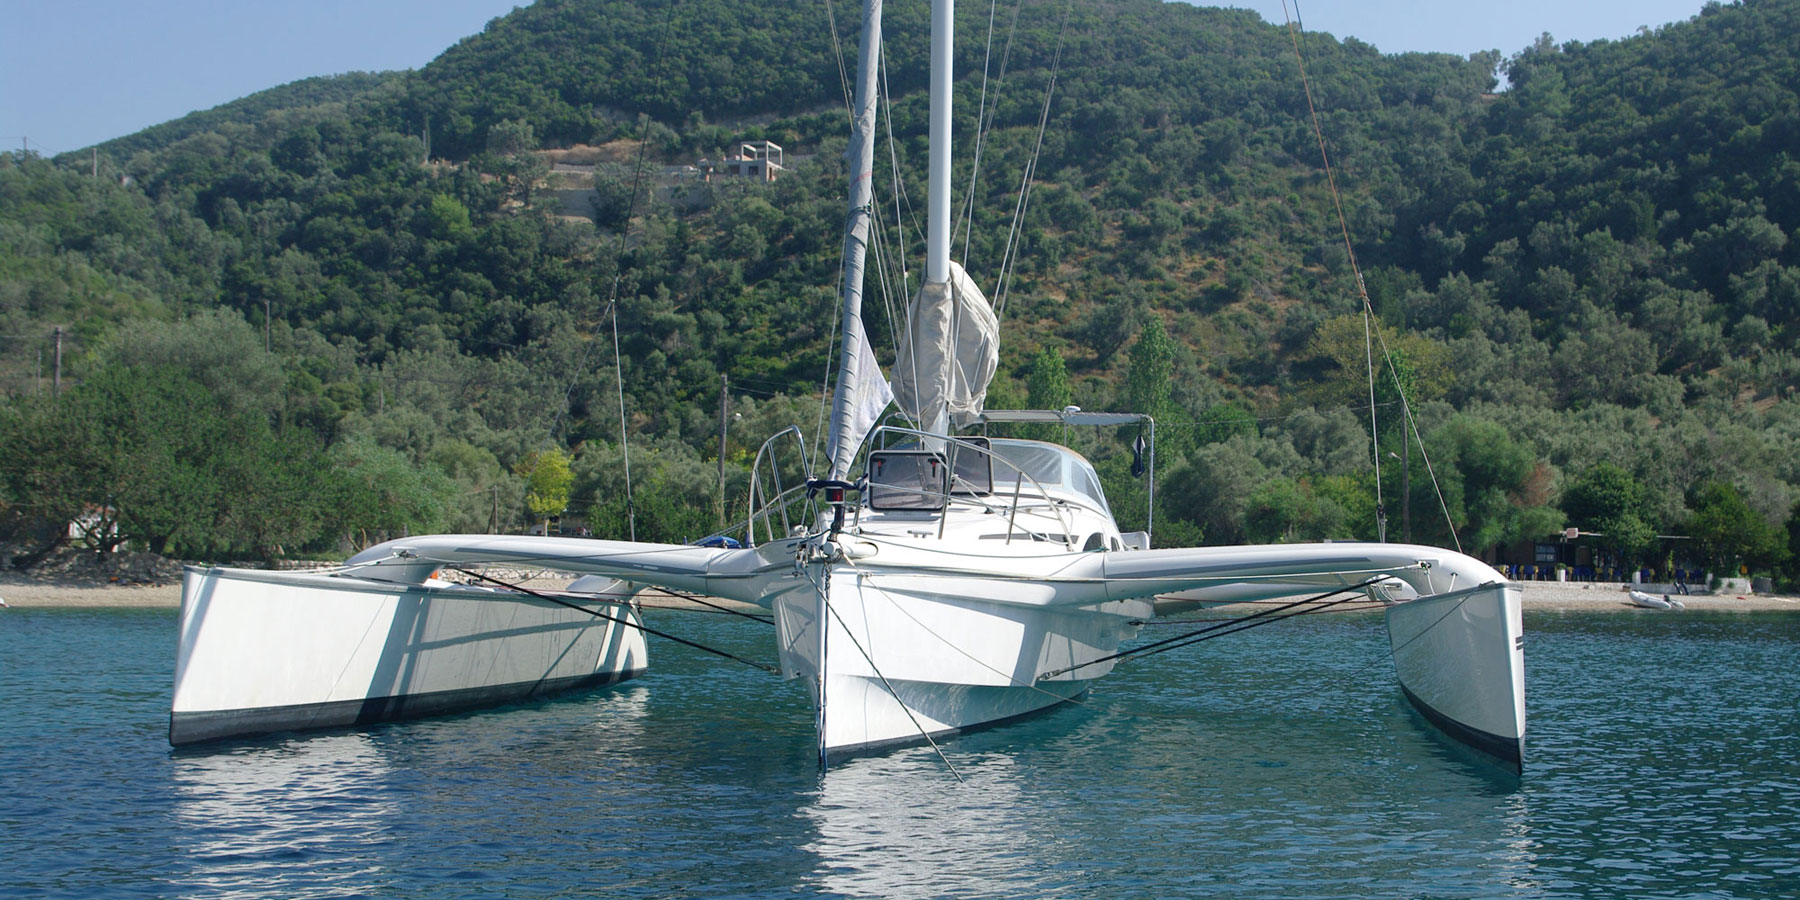 Dragonfly 35 Touring trimaran for sale